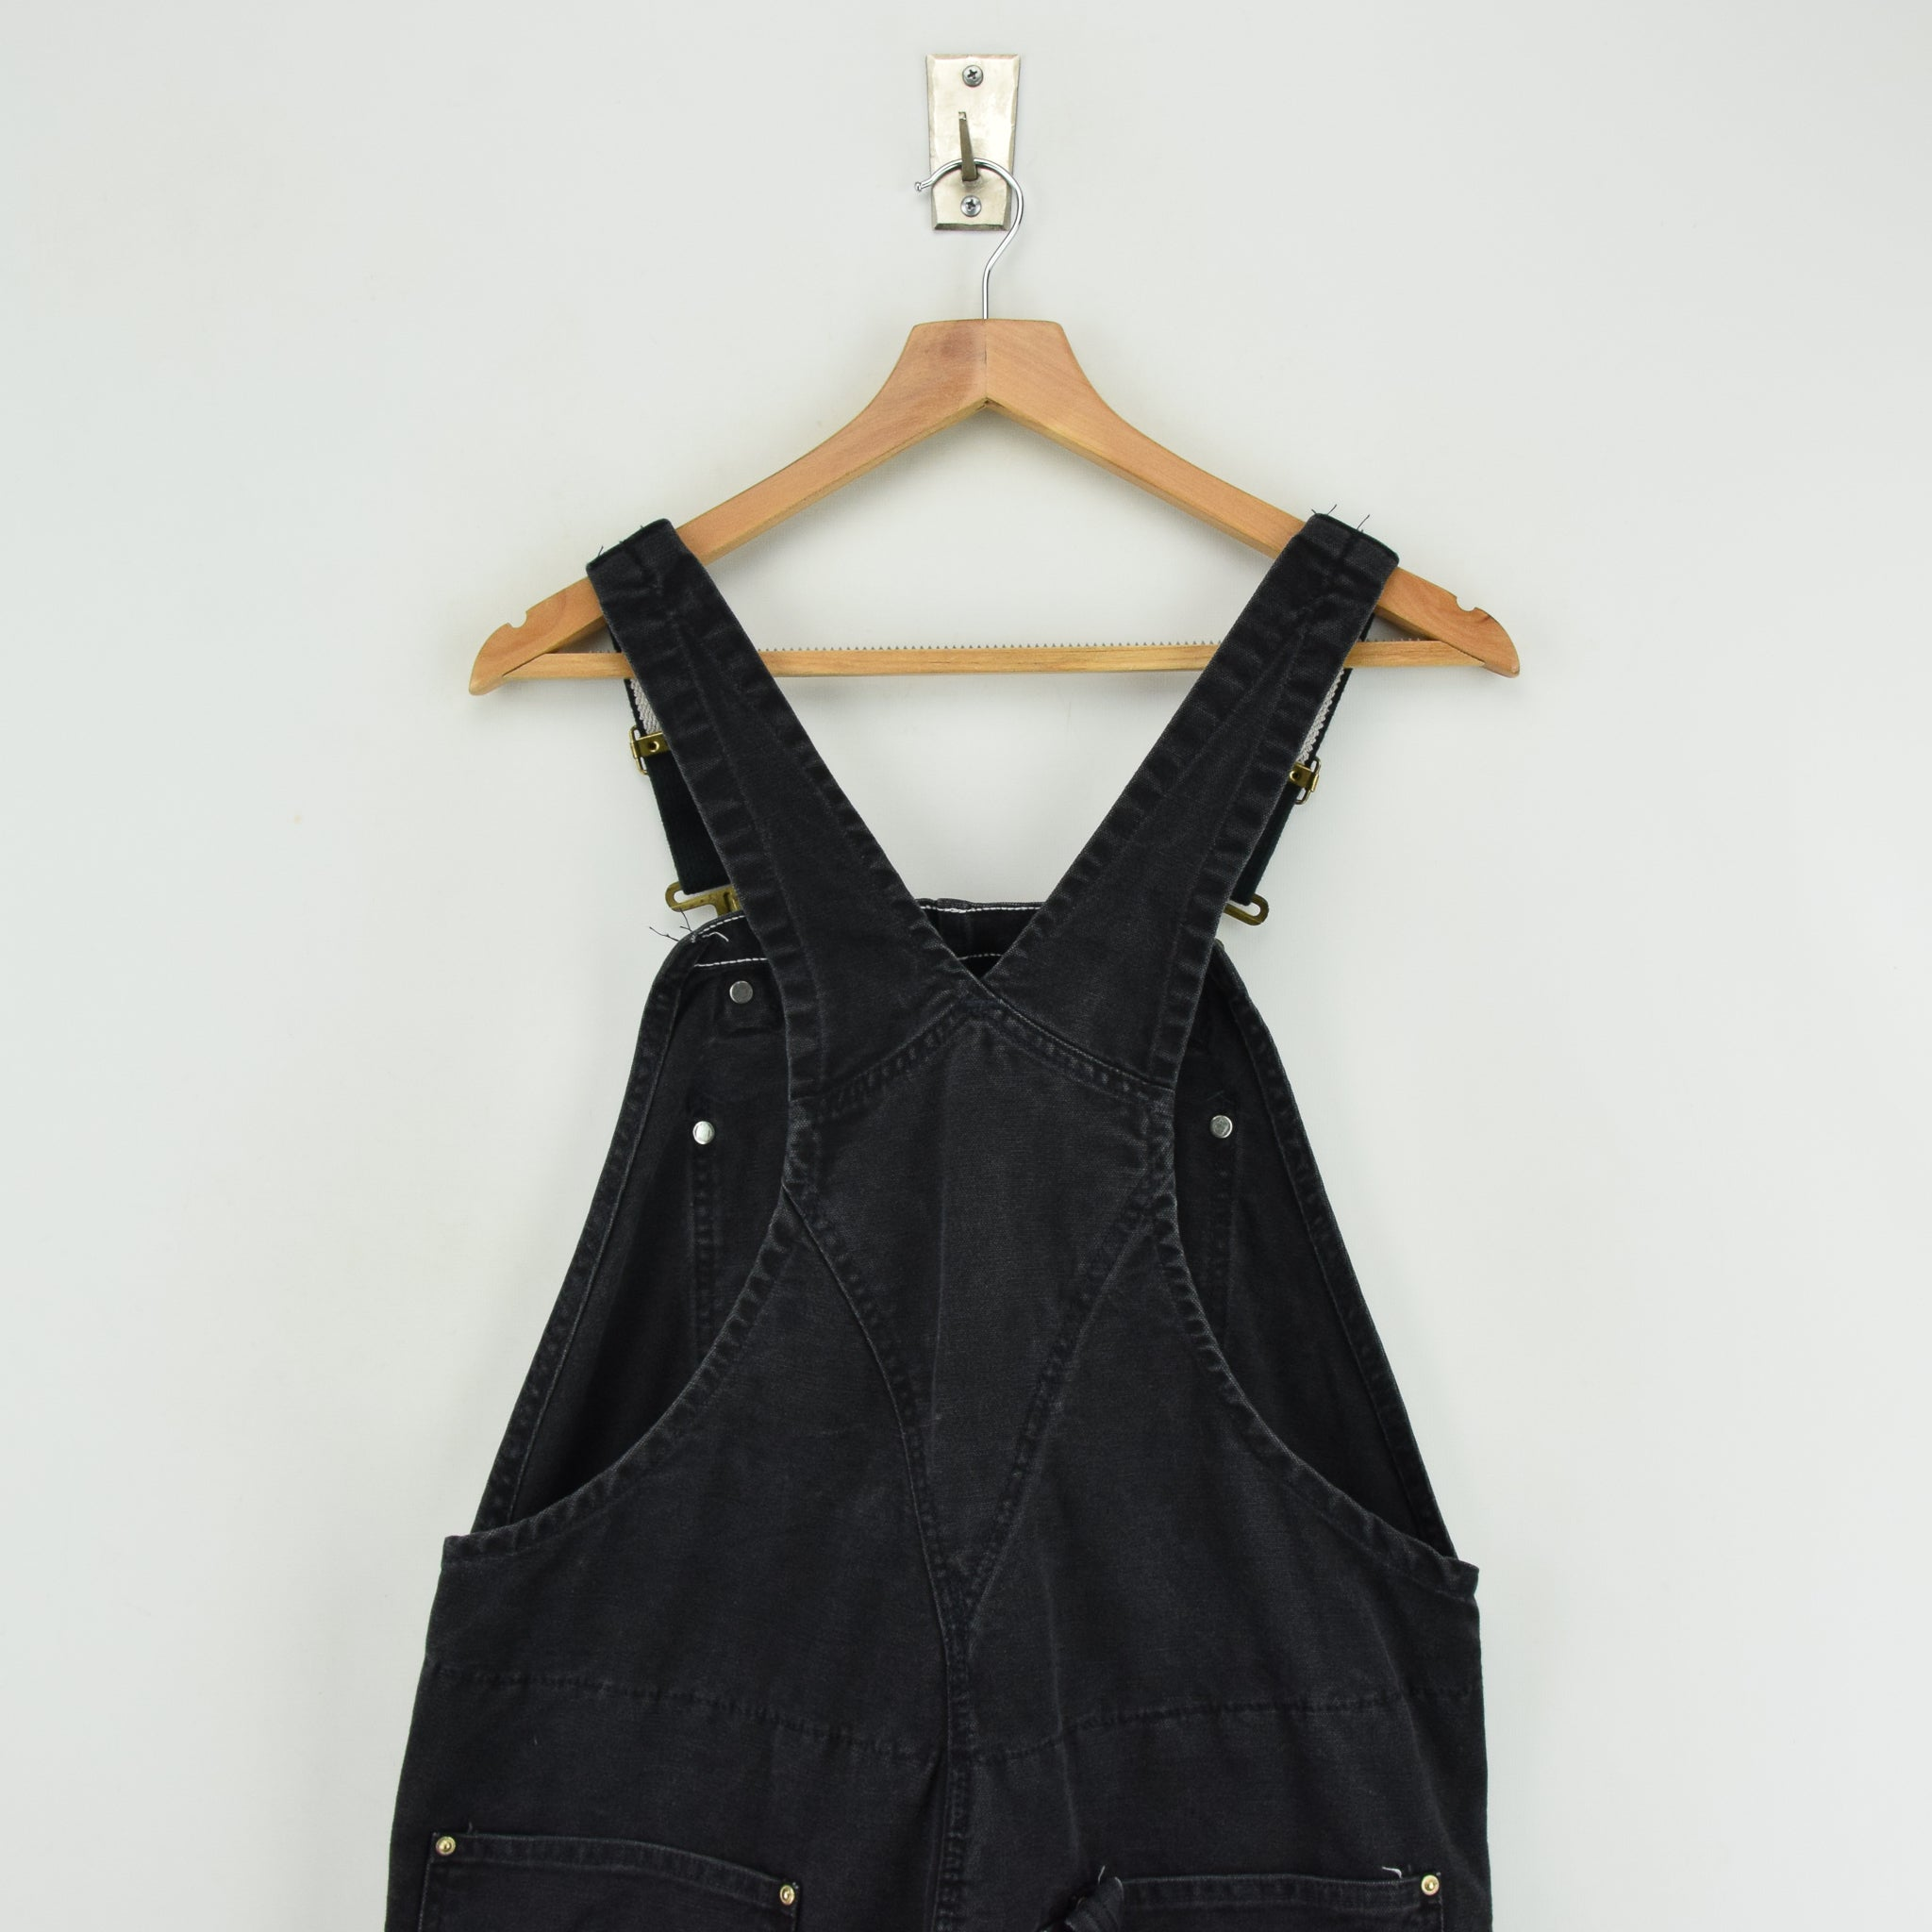 Vintage Carhartt Work Dungarees Black Duck Canvas Bib Overall Quilt Lined M upper back